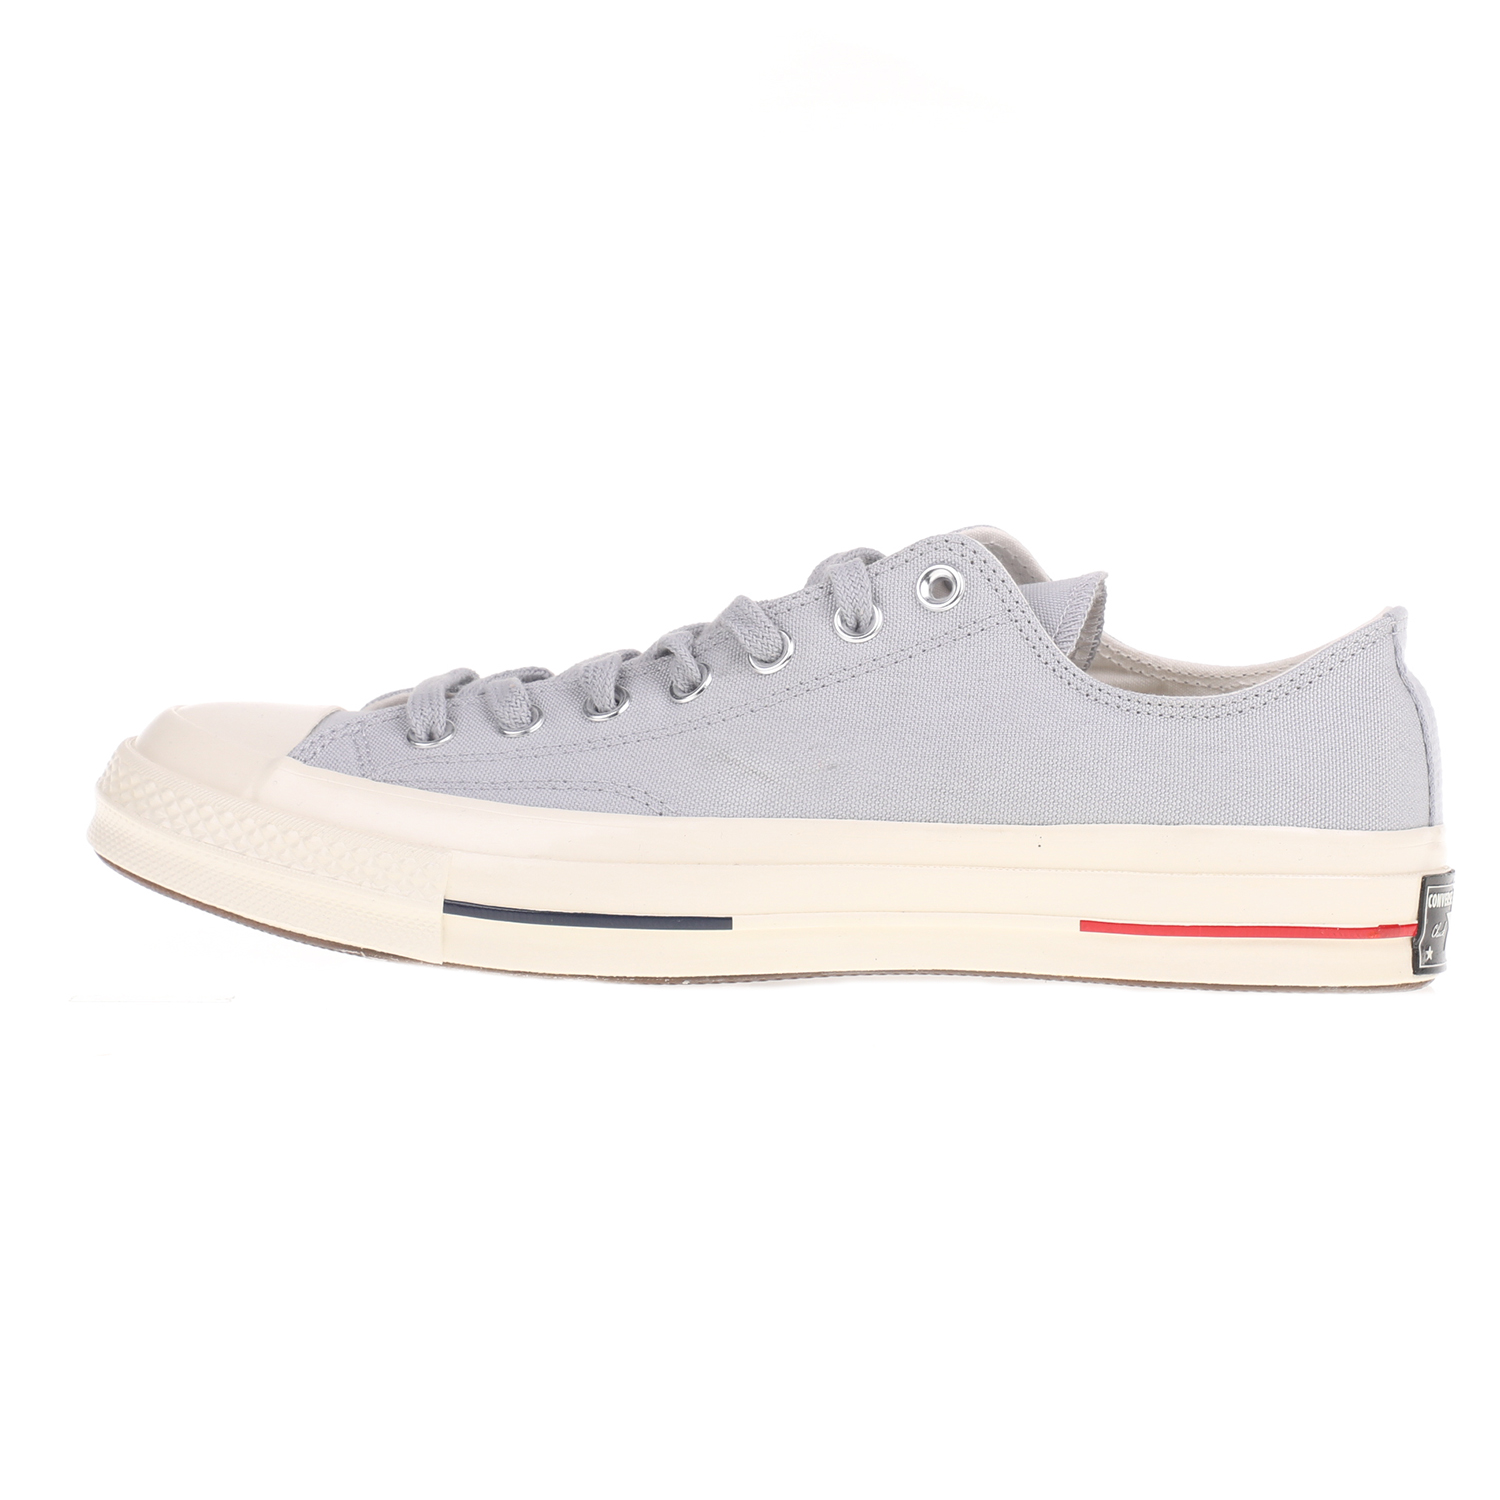 CONVERSE - Unisex sneakers CONVERSE Chuck Taylor All Star 70 Ox γκρι